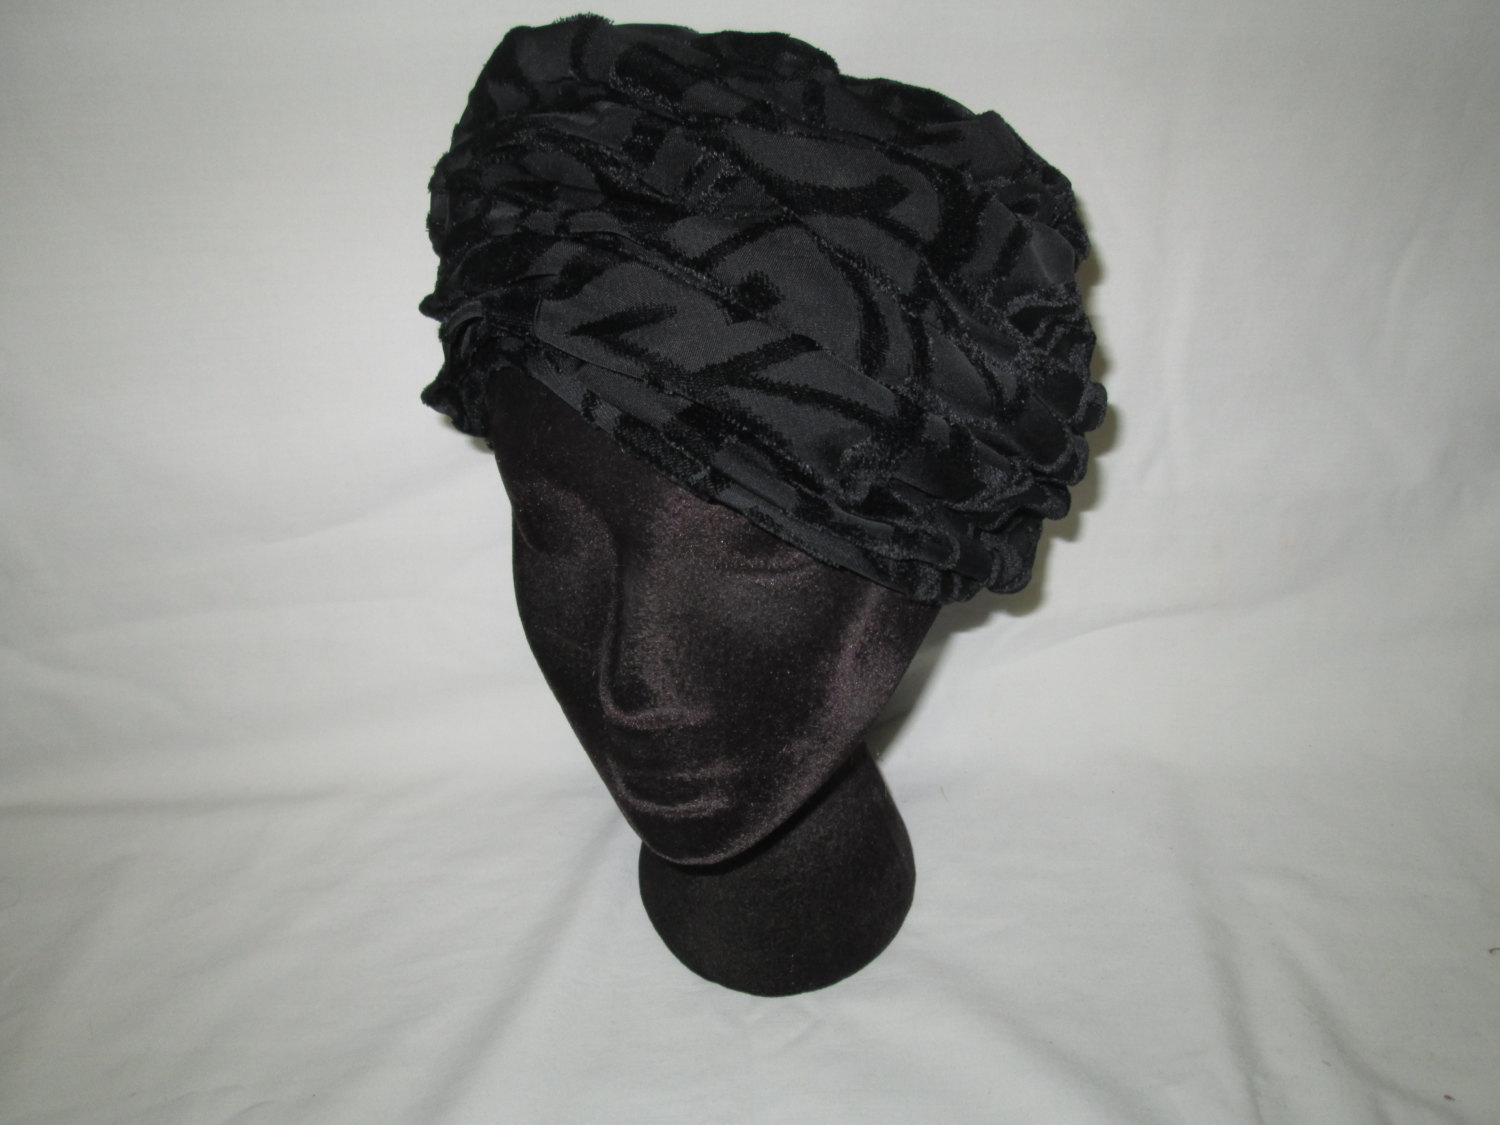 38c5eb22c40 ... with Black Velvet. Vintage 1940 s Layered Sheer Fabric Pillbox Hat  Women s Accessory Dajon New York Original Gross Grained Lined